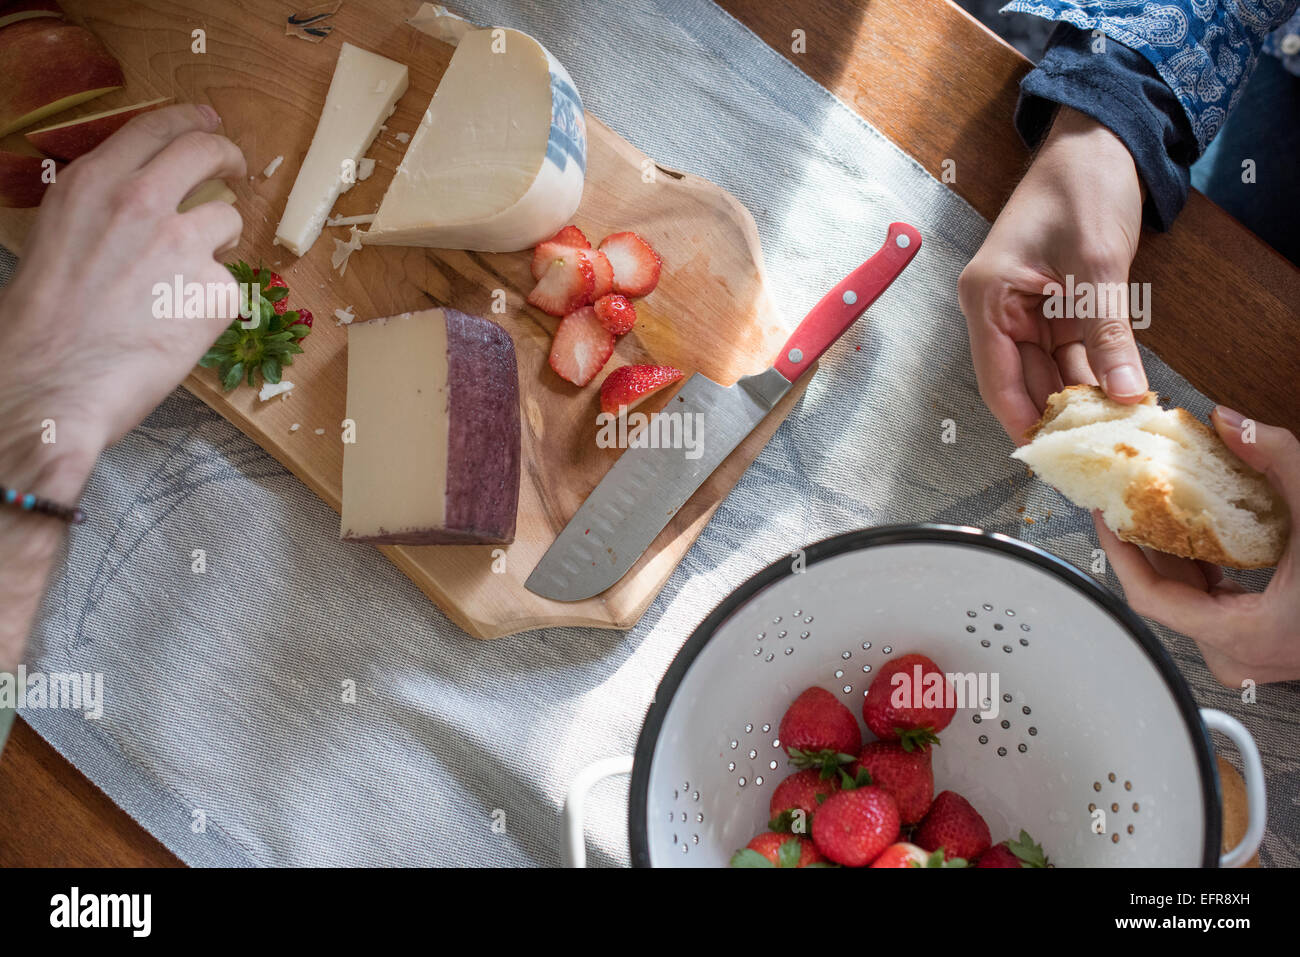 Man and woman sitting at a table with a wooden chopping board with a selection of cheeses, strawberries and bread. - Stock Image